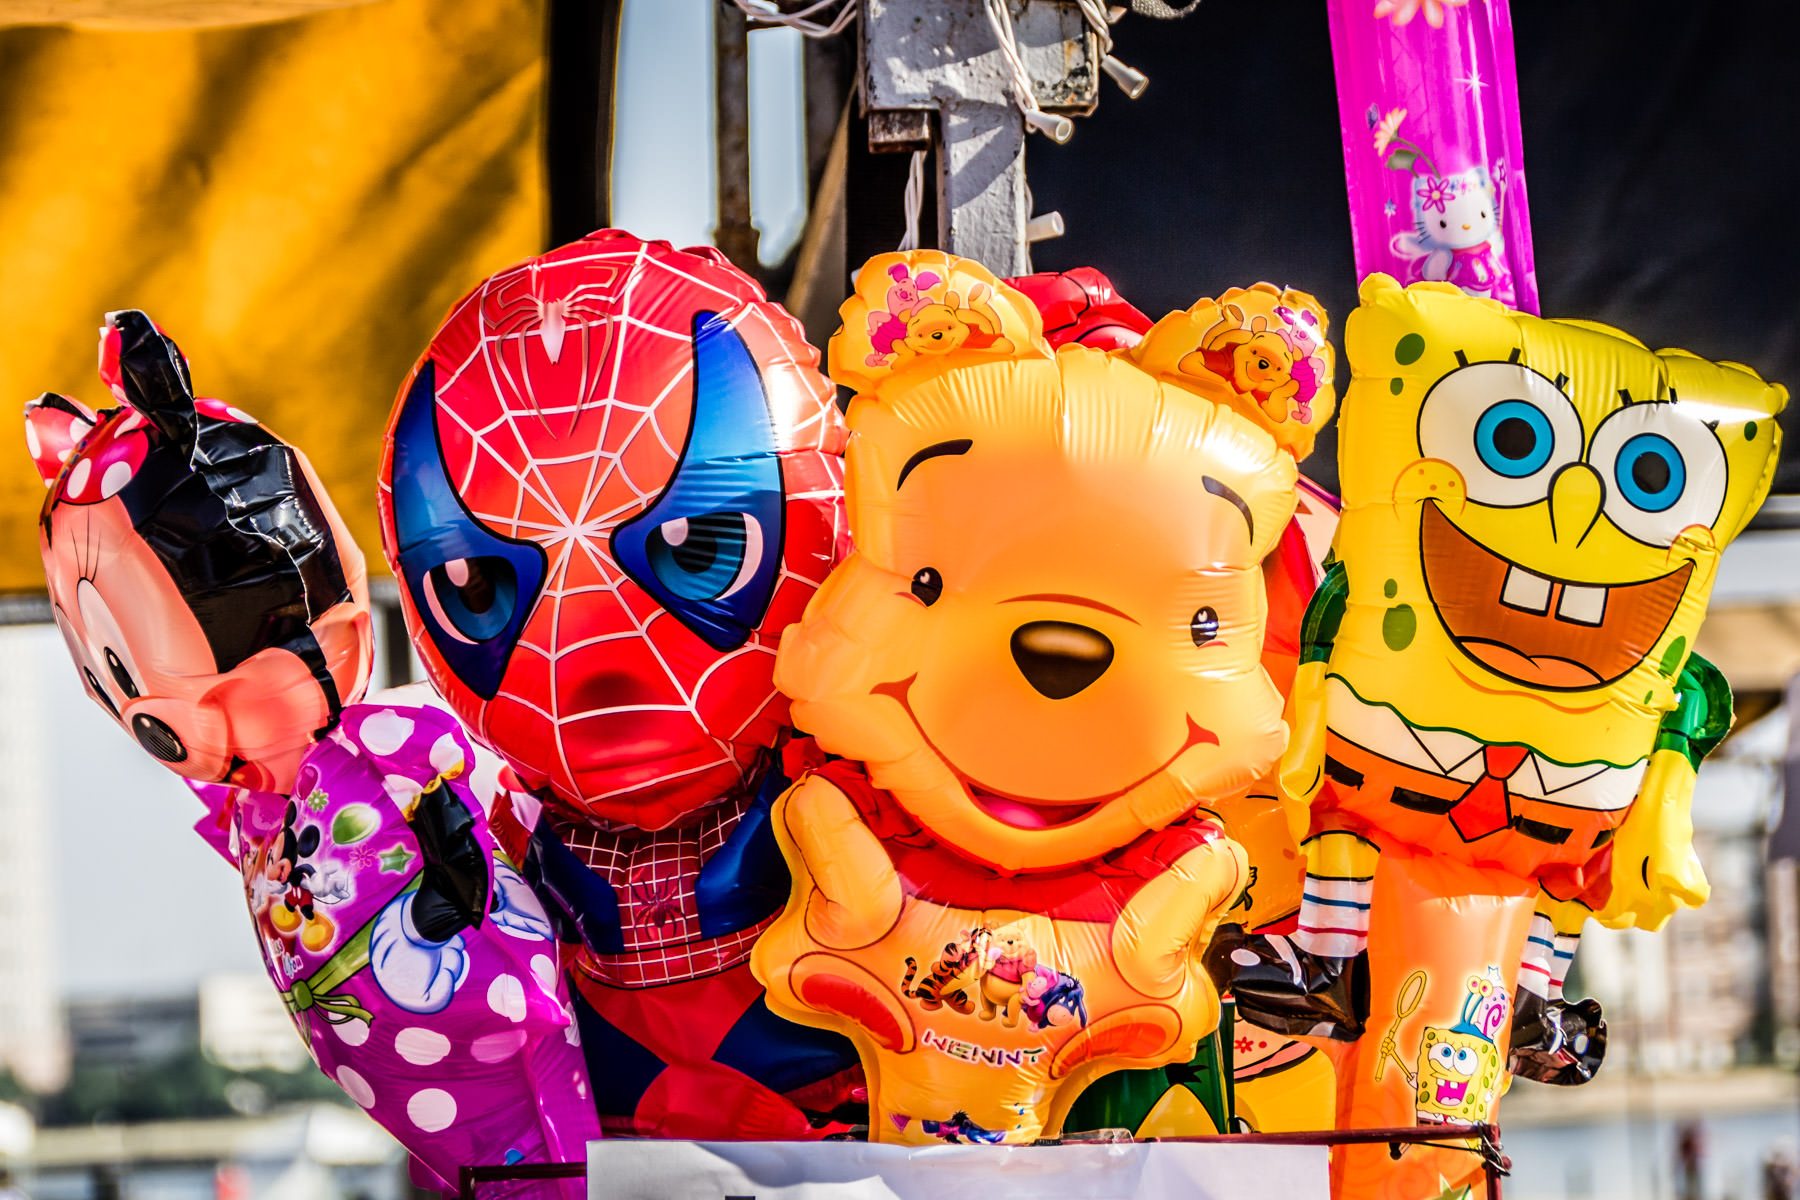 Toy balloons of cartoon characters spotted at the 2012 DFW Dragon Boat Festival, Las Colinas, Texas.